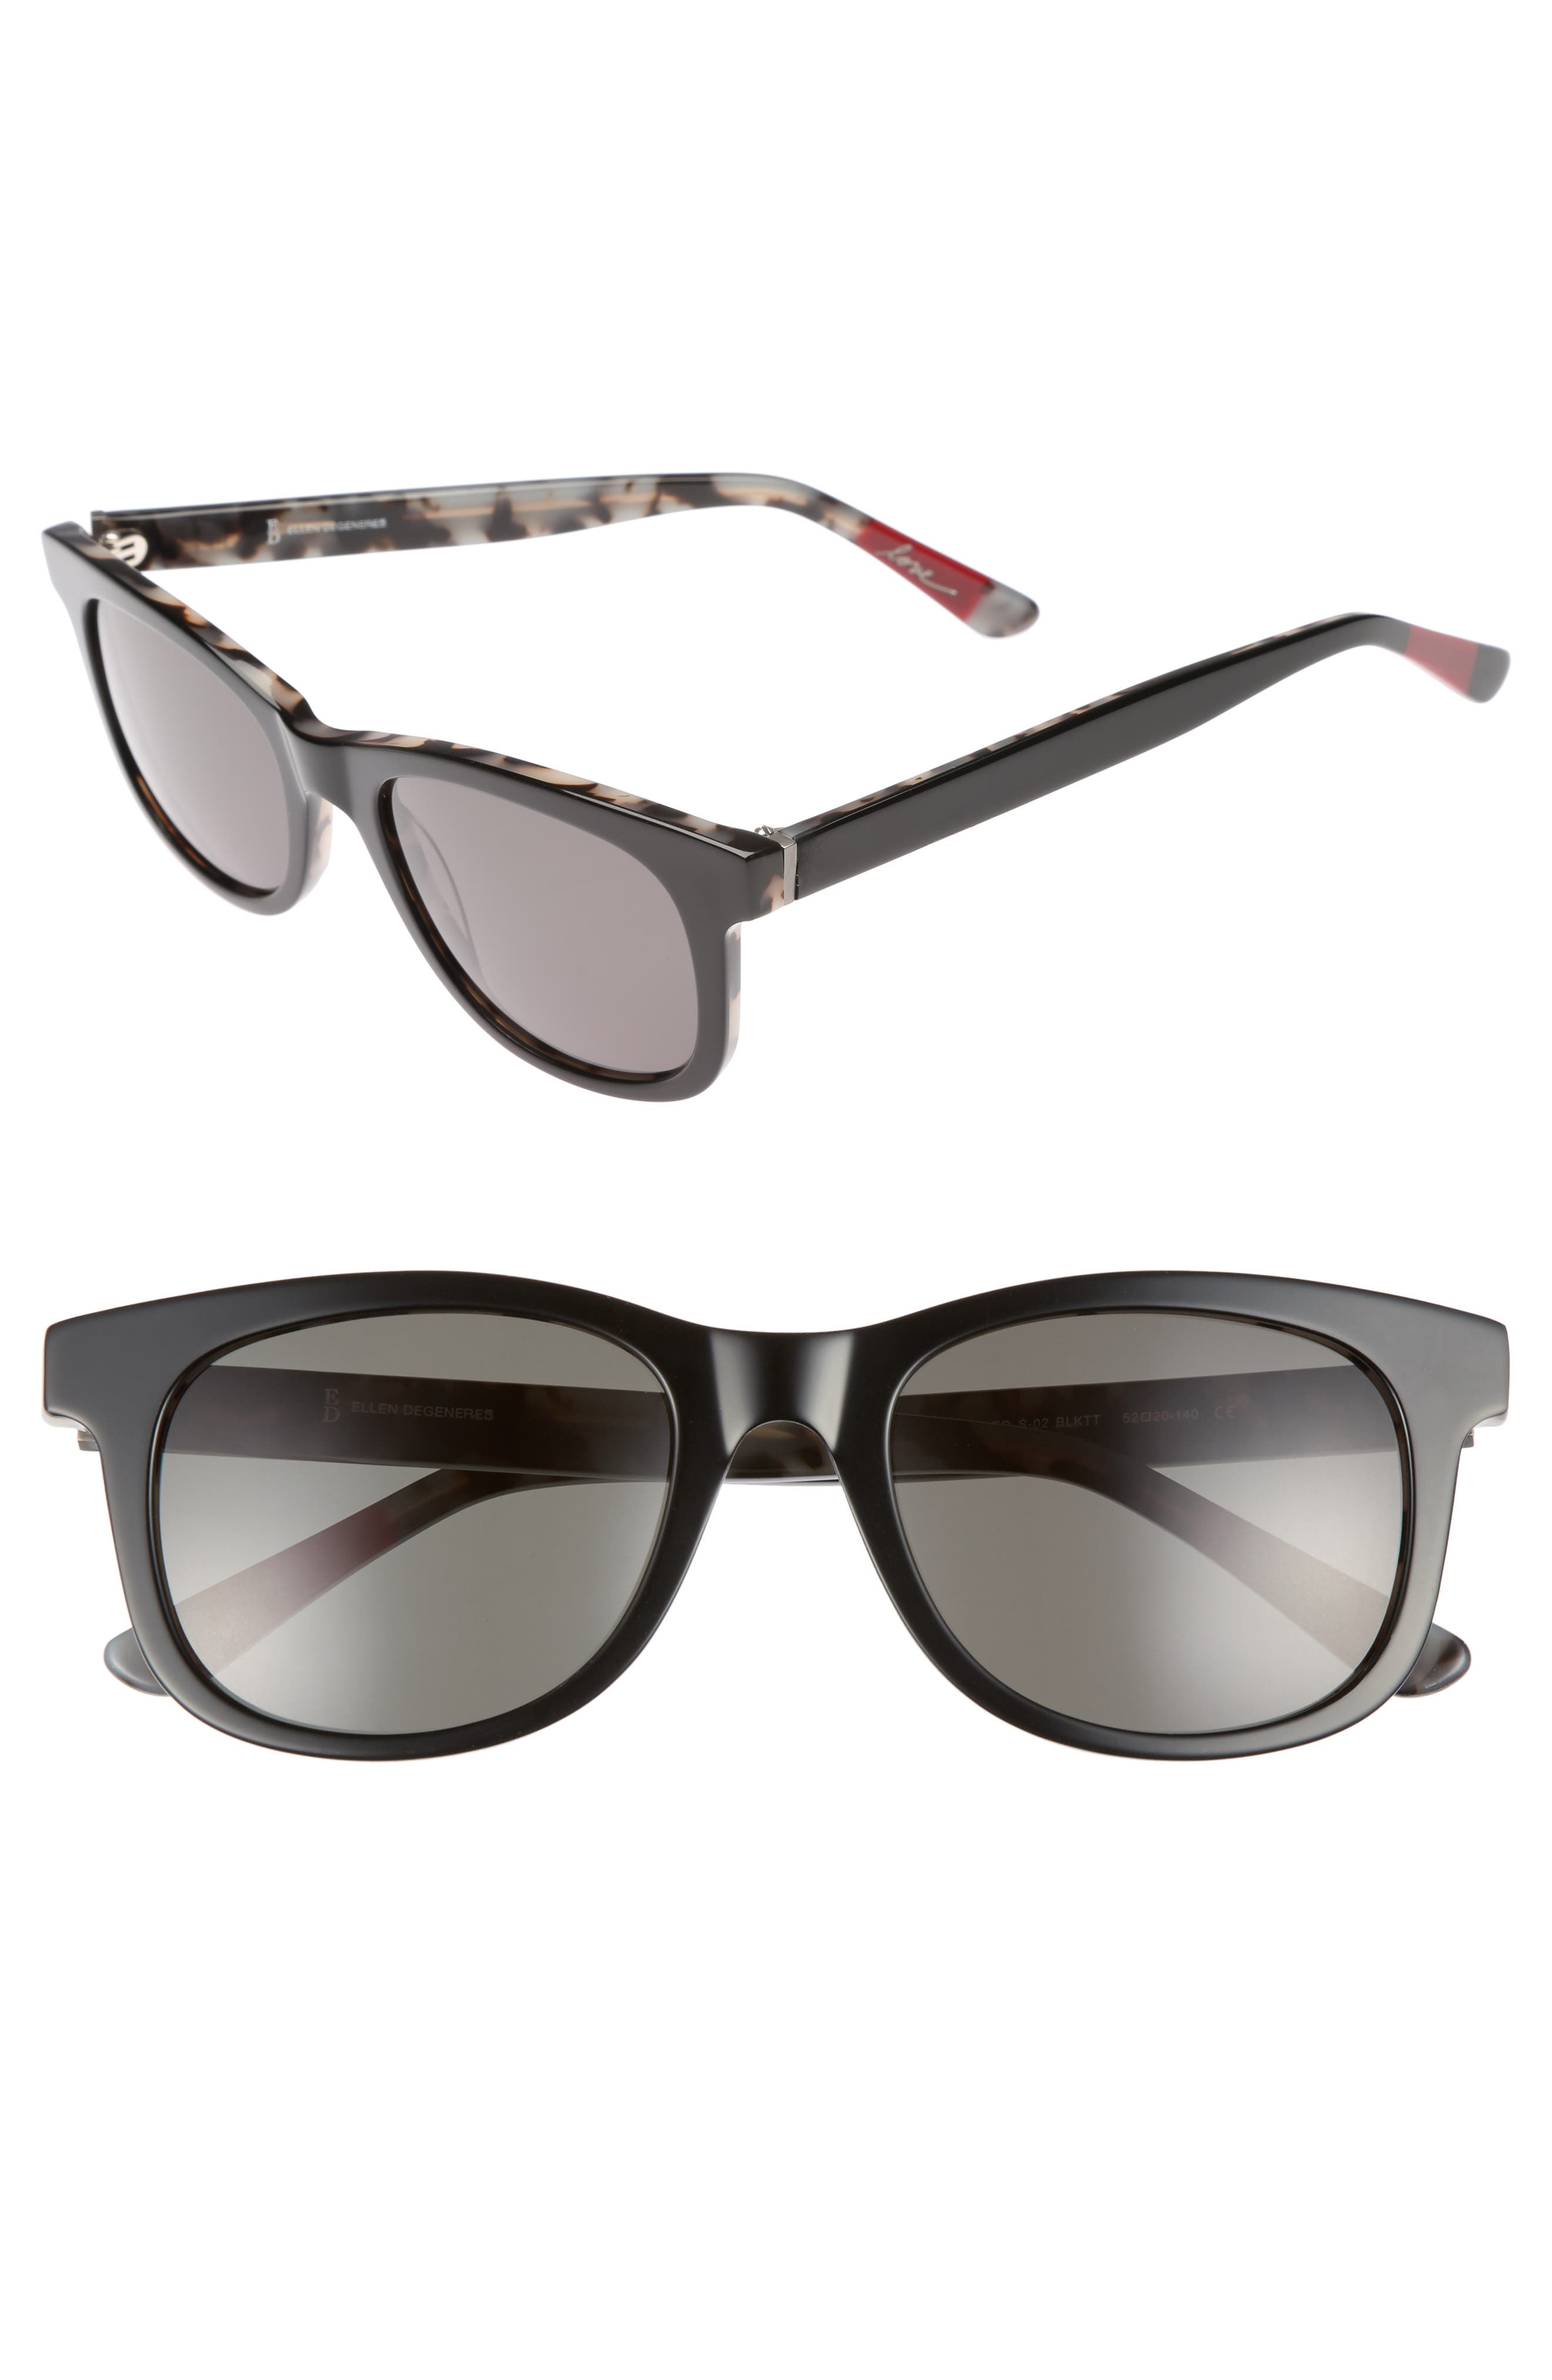 52mm Gradient Sunglasses,                         Main,                         color, BLACK TORTOISE